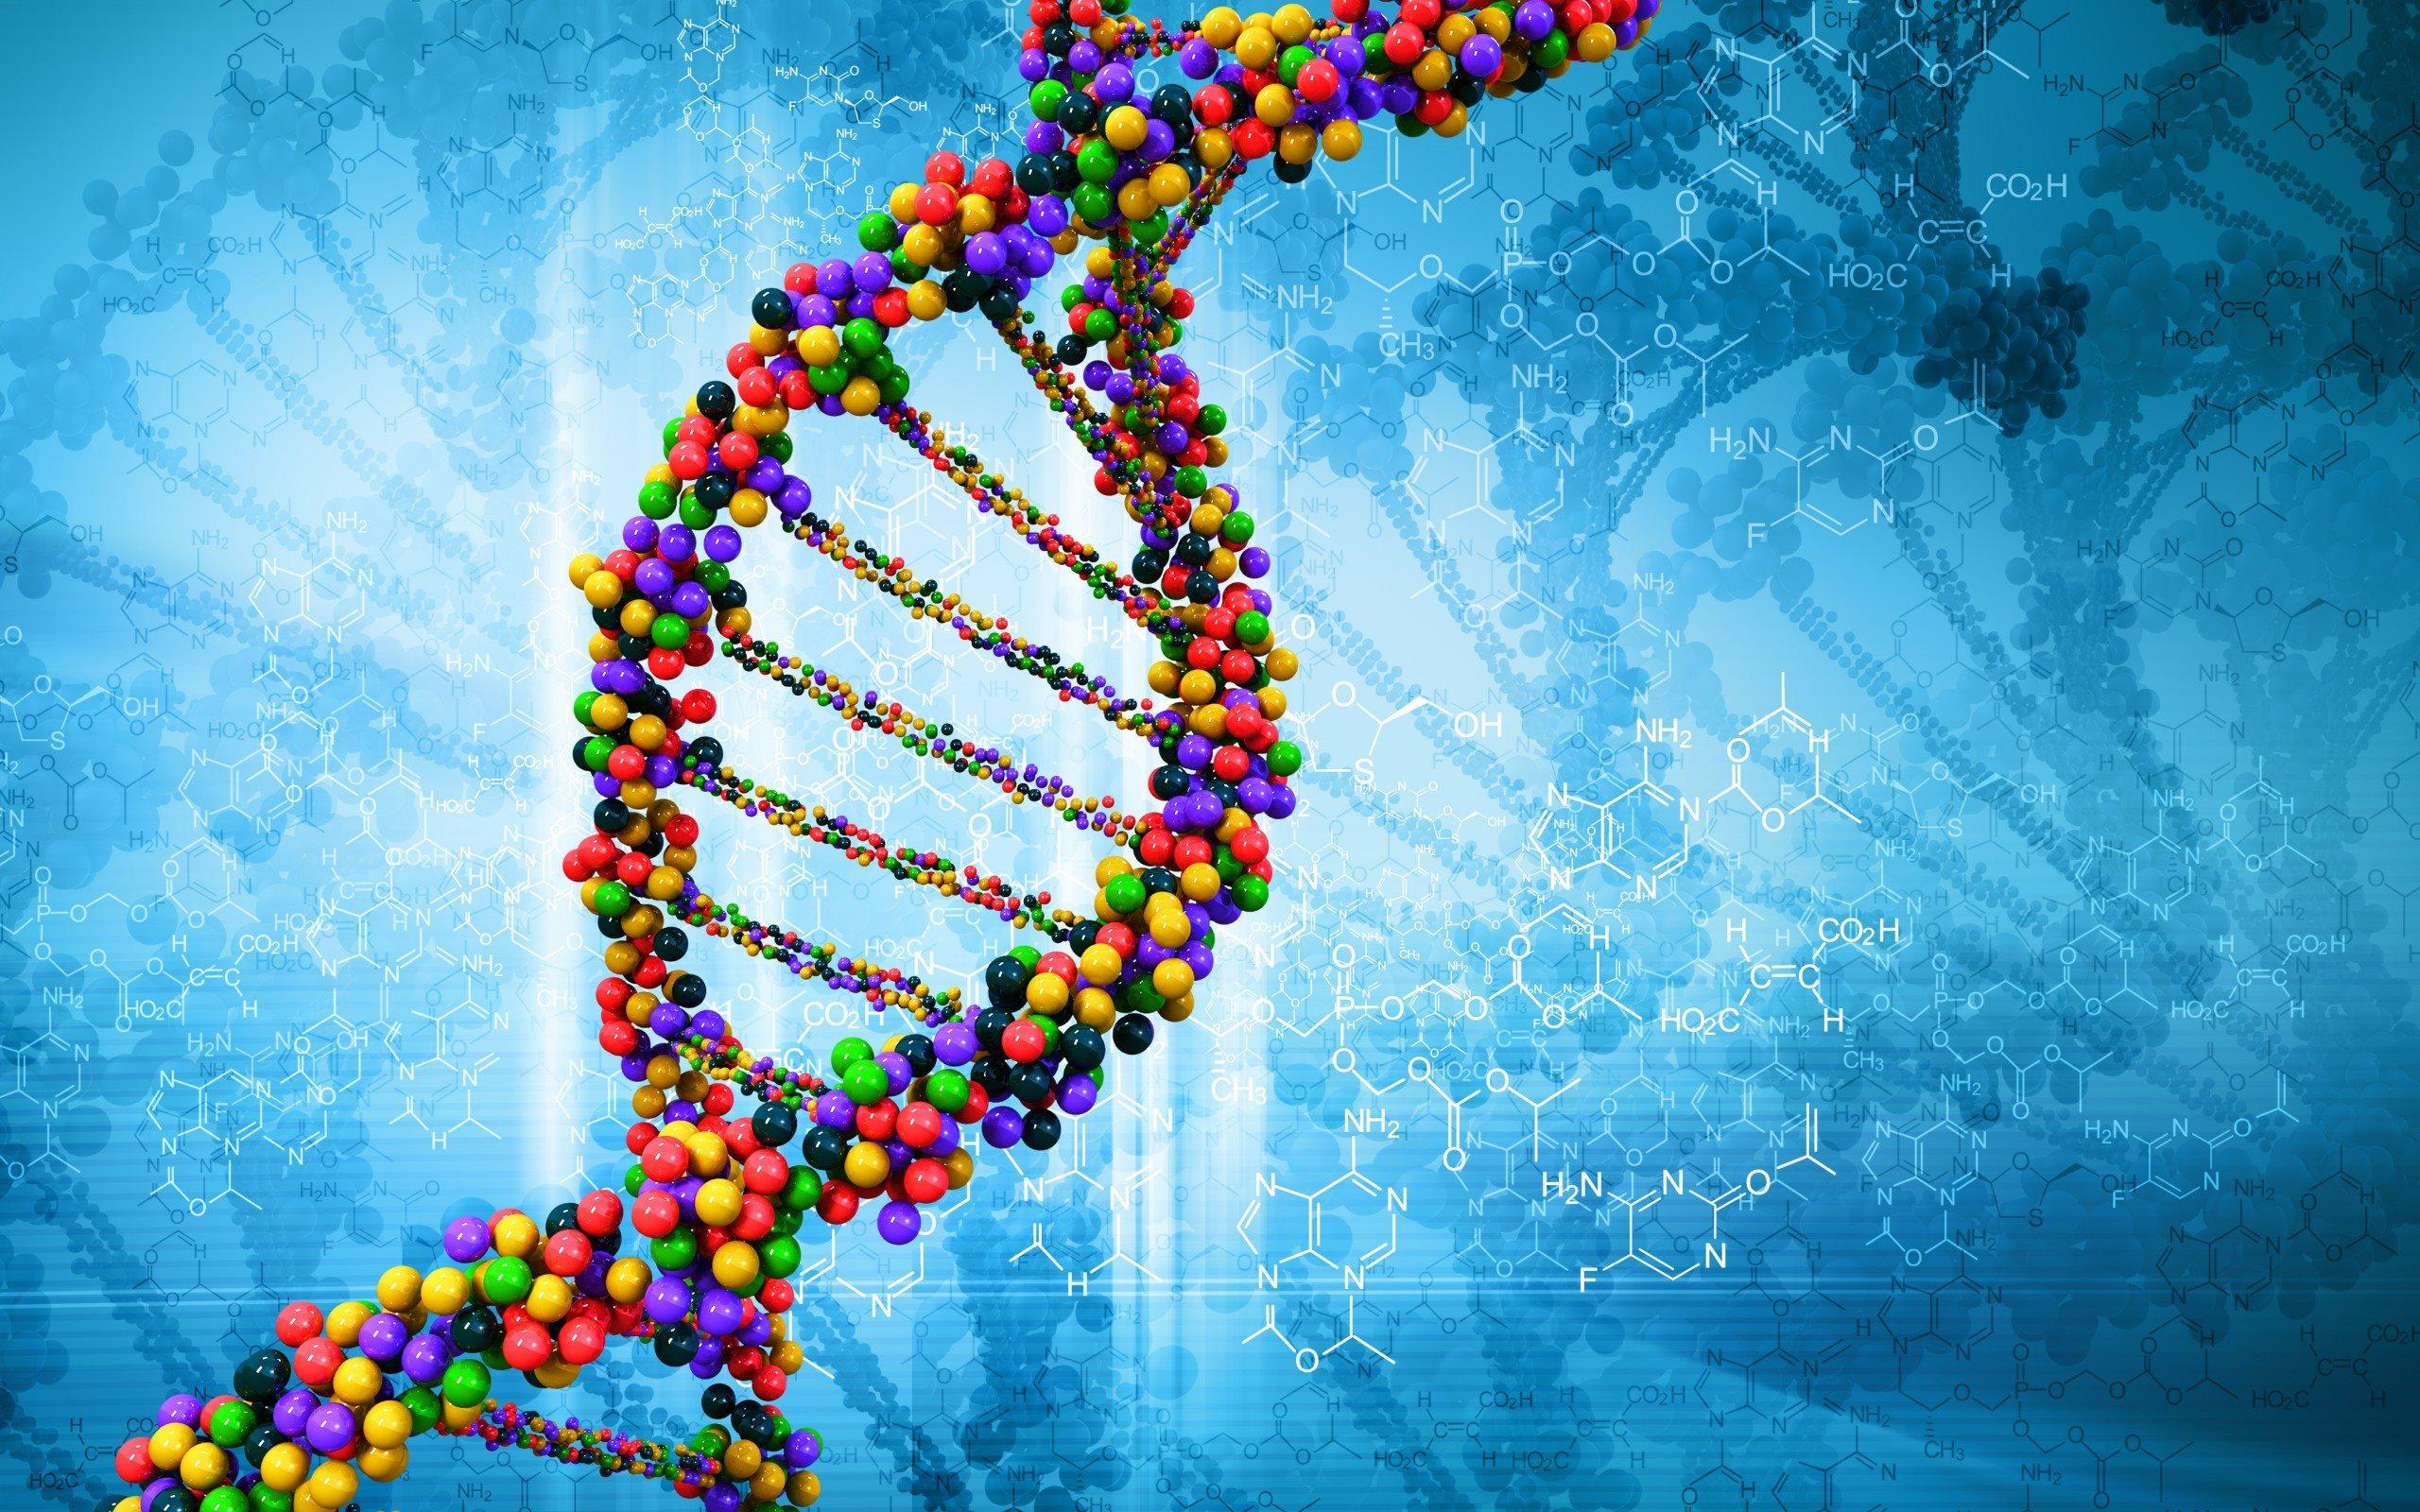 New Study Shows Human Cells Can Write RNA Into DNA